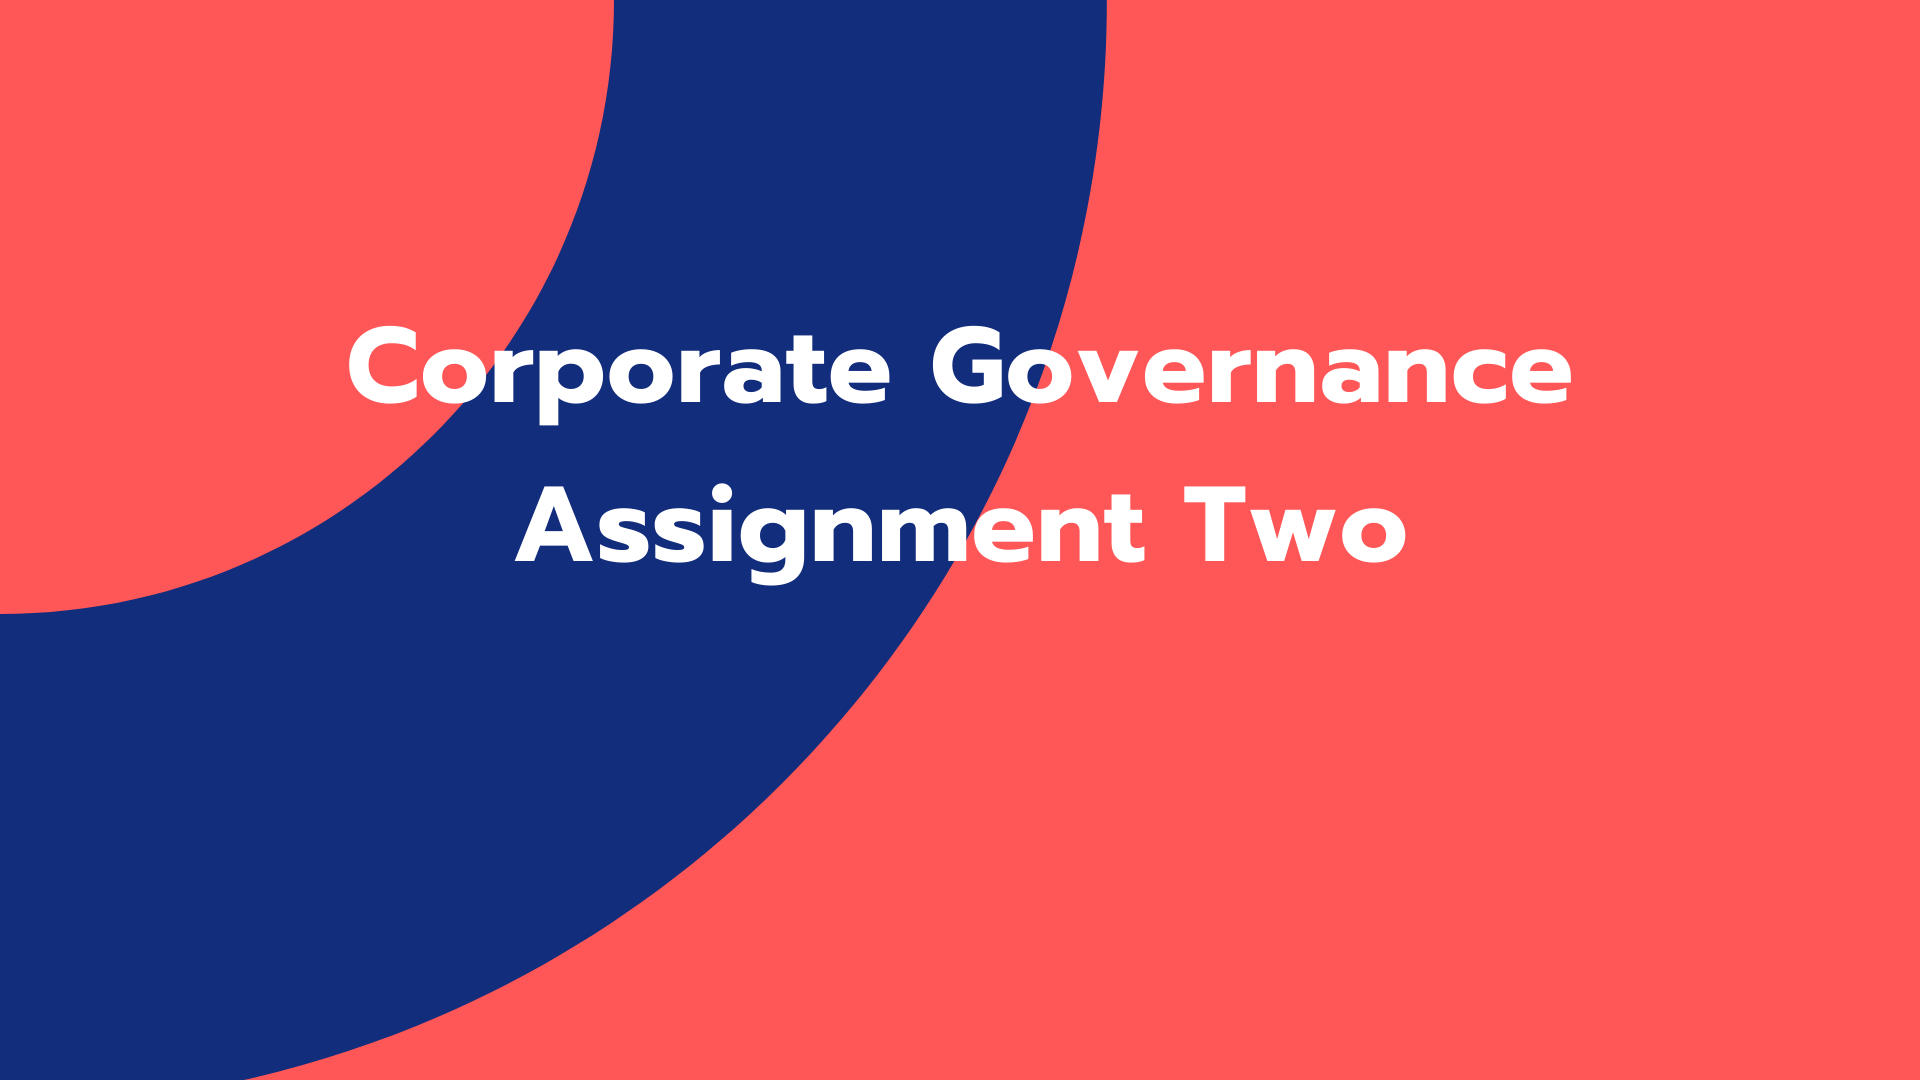 Corporate Governance Assignment Two